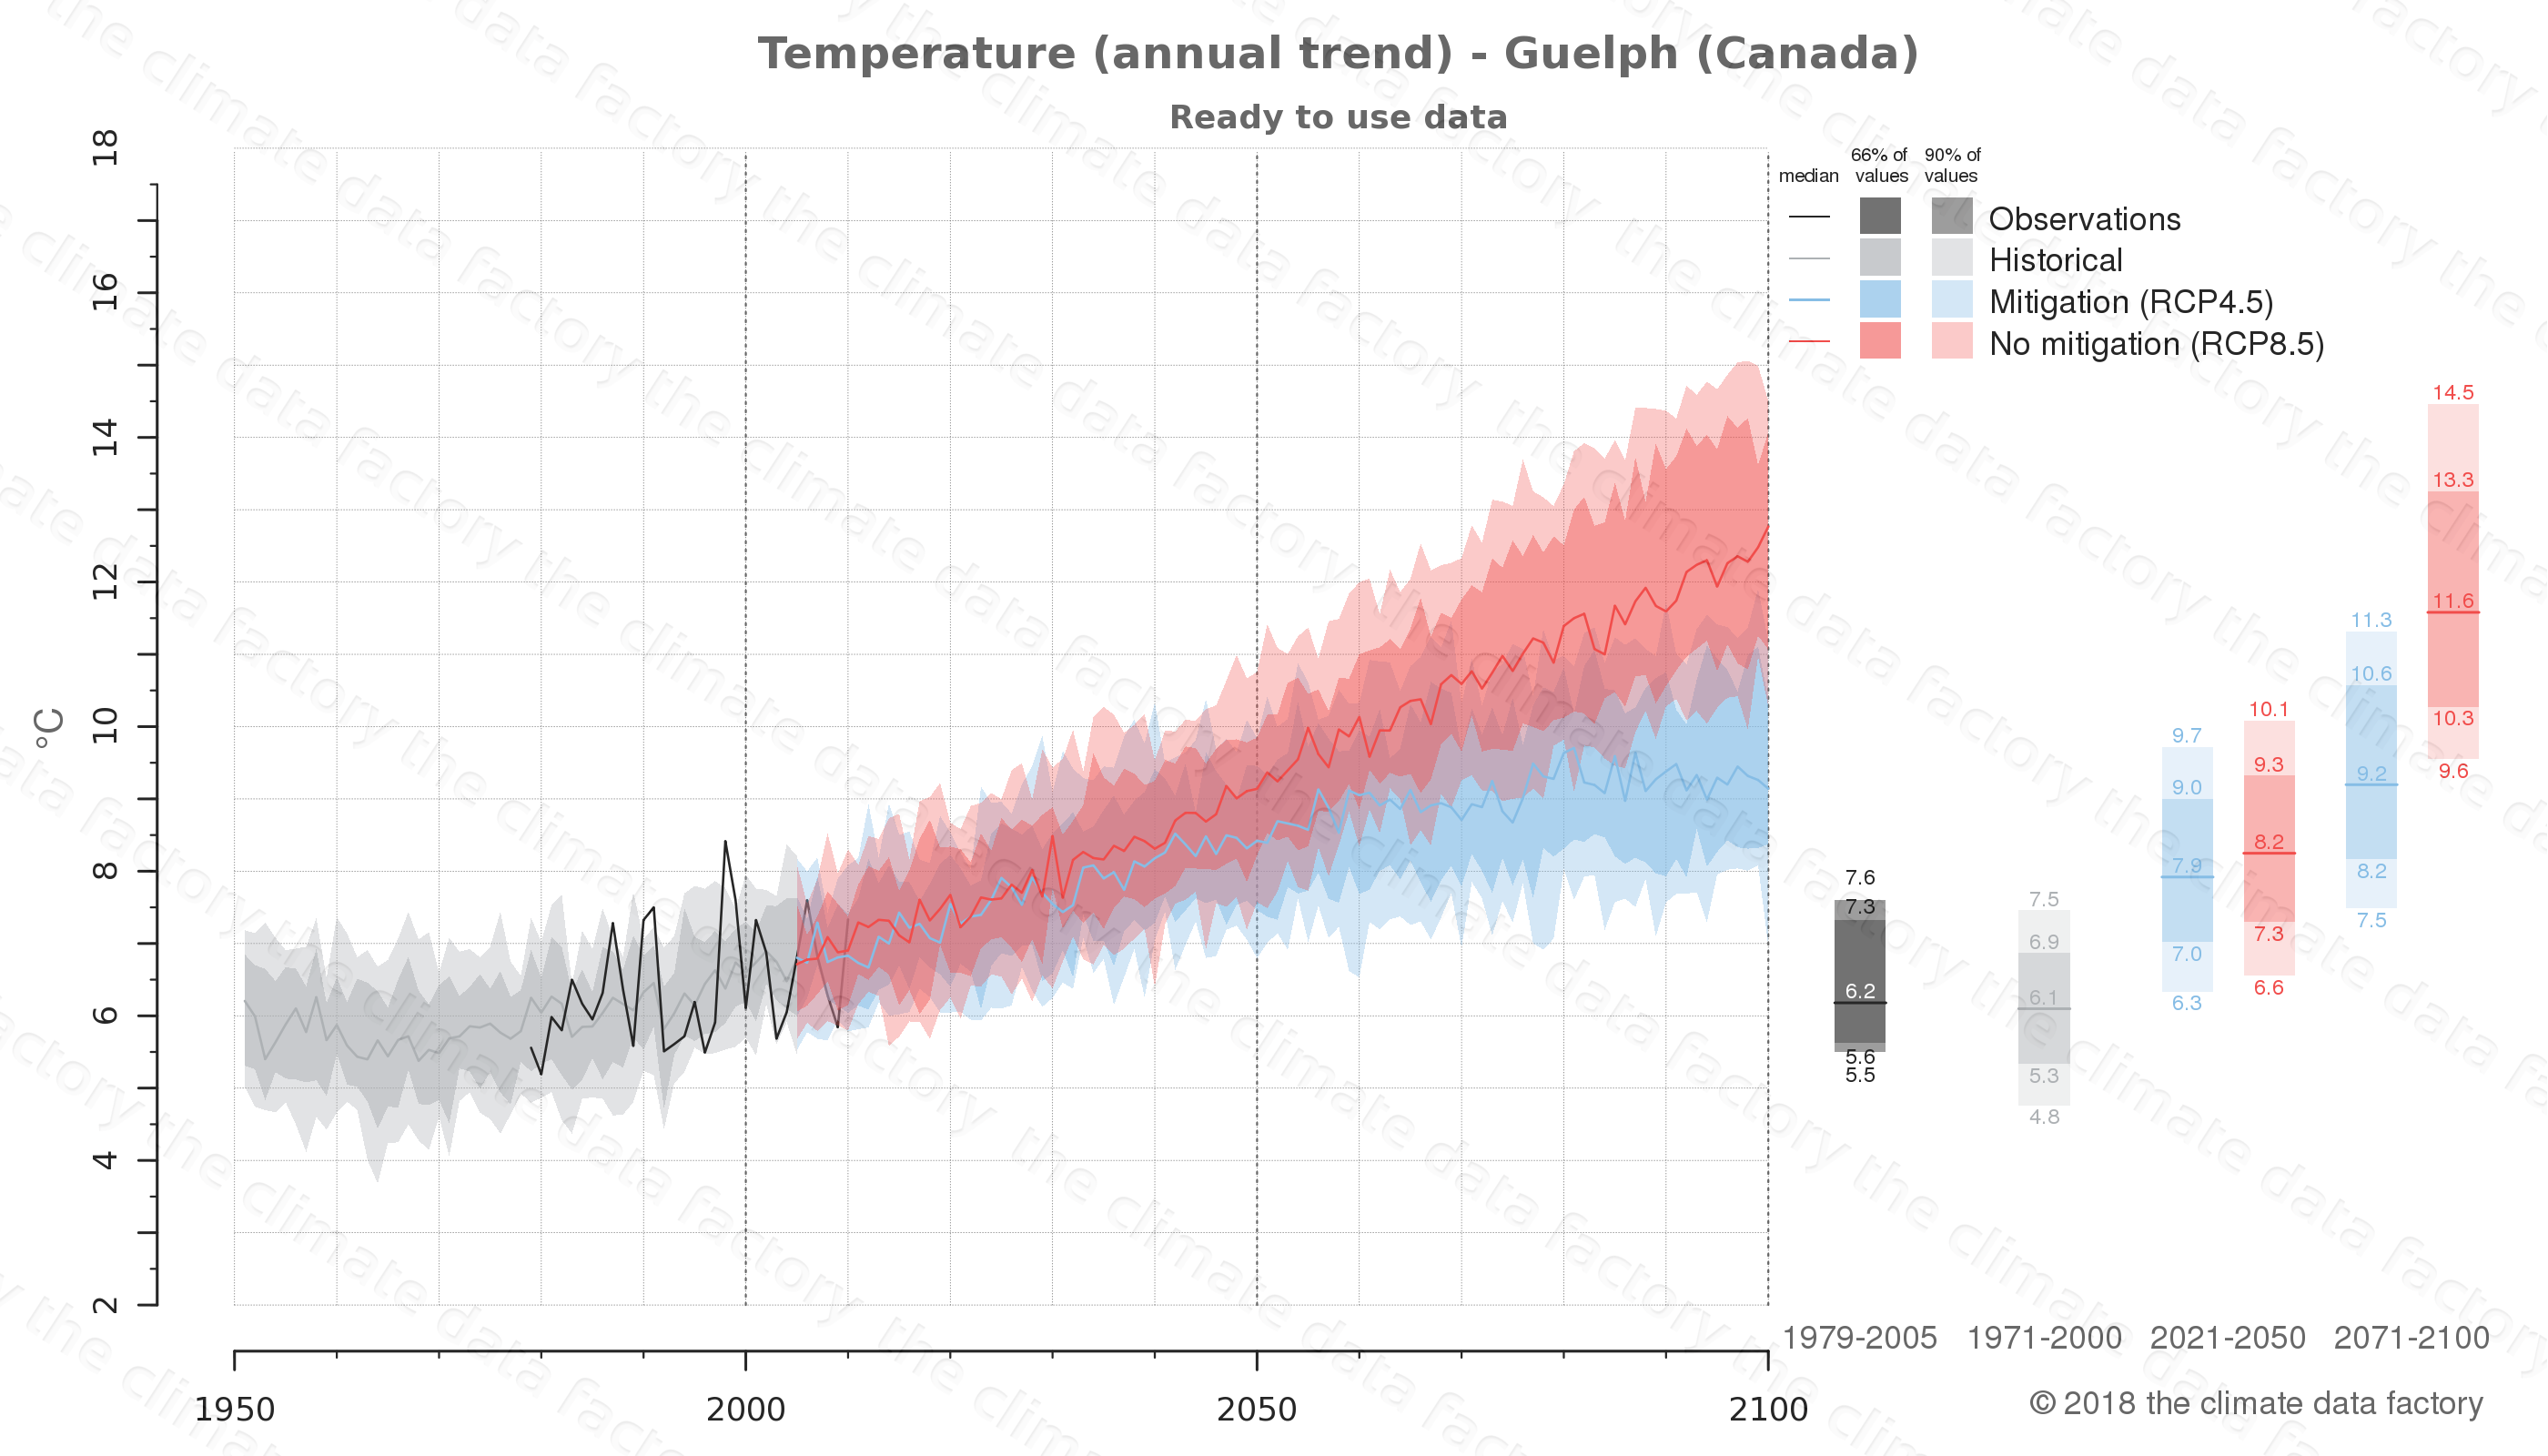 climate change data policy adaptation climate graph city data temperature guelph canada